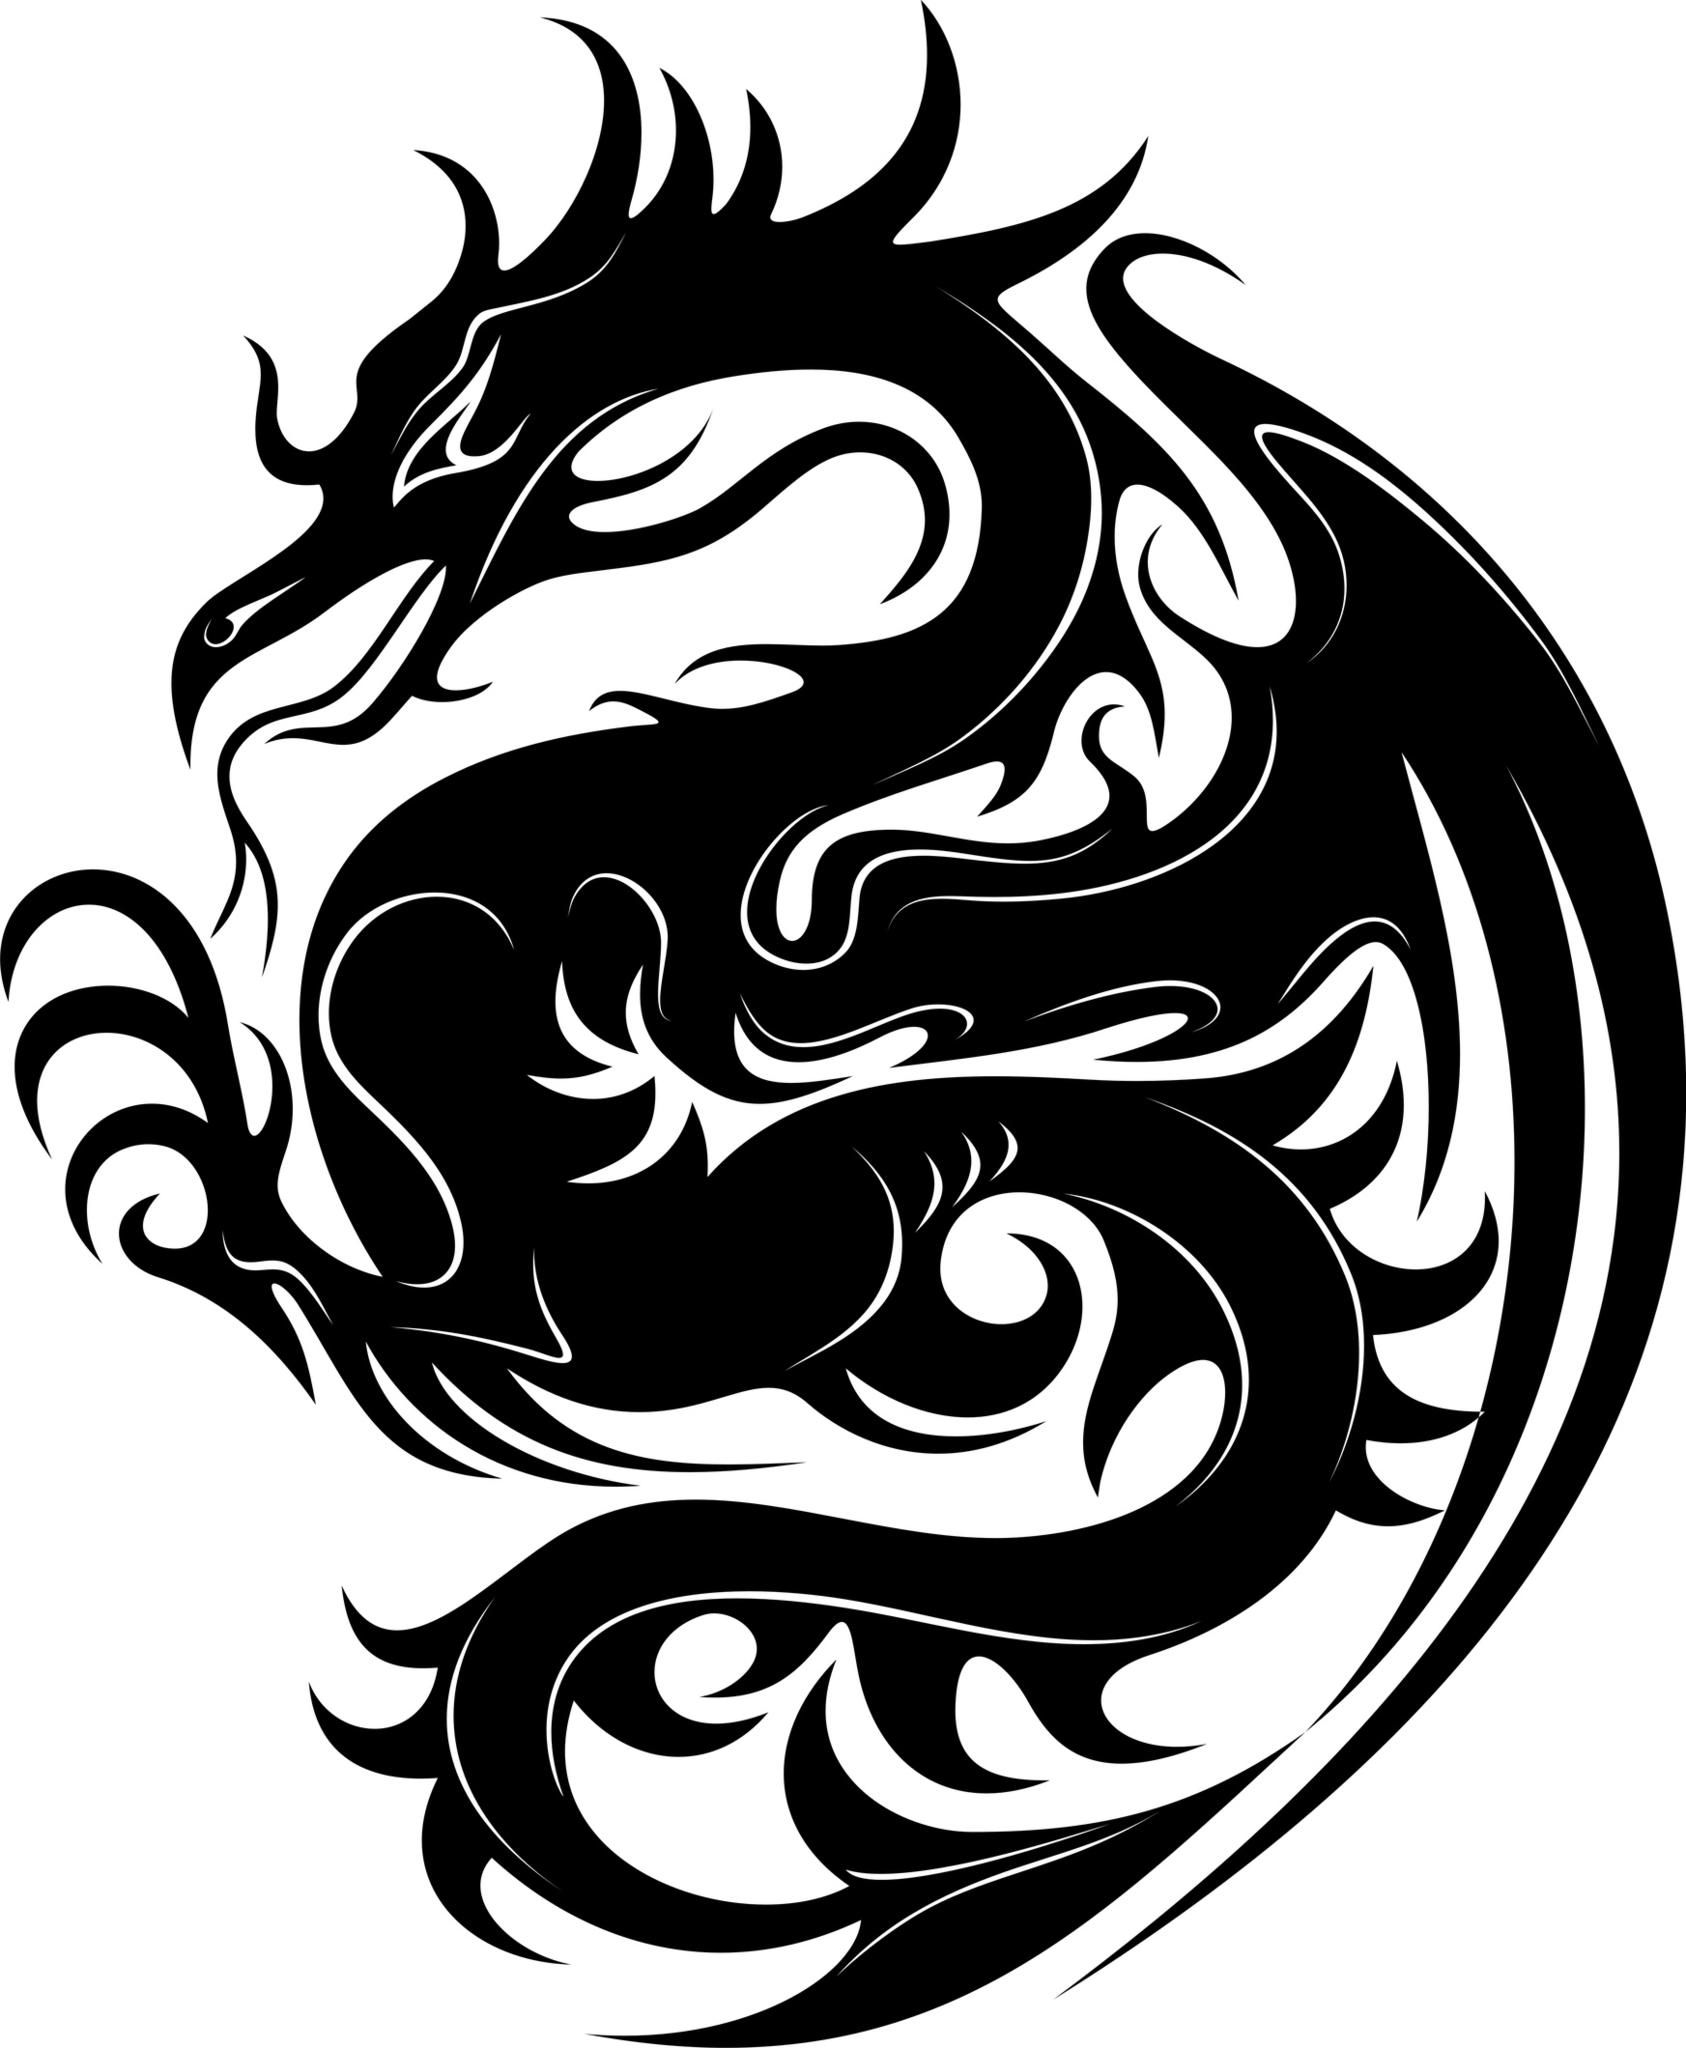 dragon stencil google search dragon stencil designs pinterest stenciling dragons and. Black Bedroom Furniture Sets. Home Design Ideas